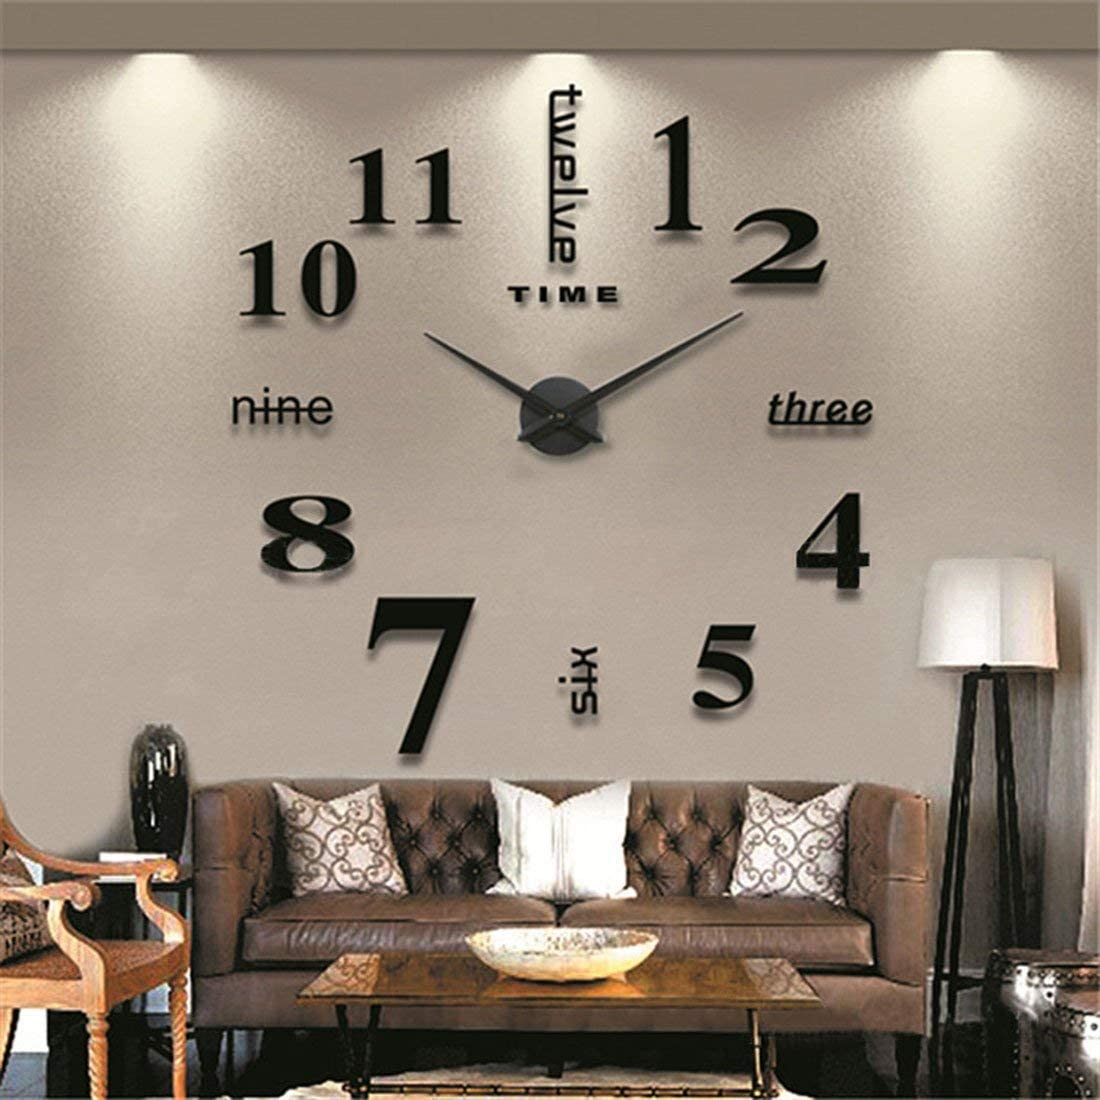 Fanyuanfds Frameless DIY Wall Clock,Large 3D Mirror Wall Clock Home Decorations for Home Living Room Bedroom Office Decoration (WL03-Black)